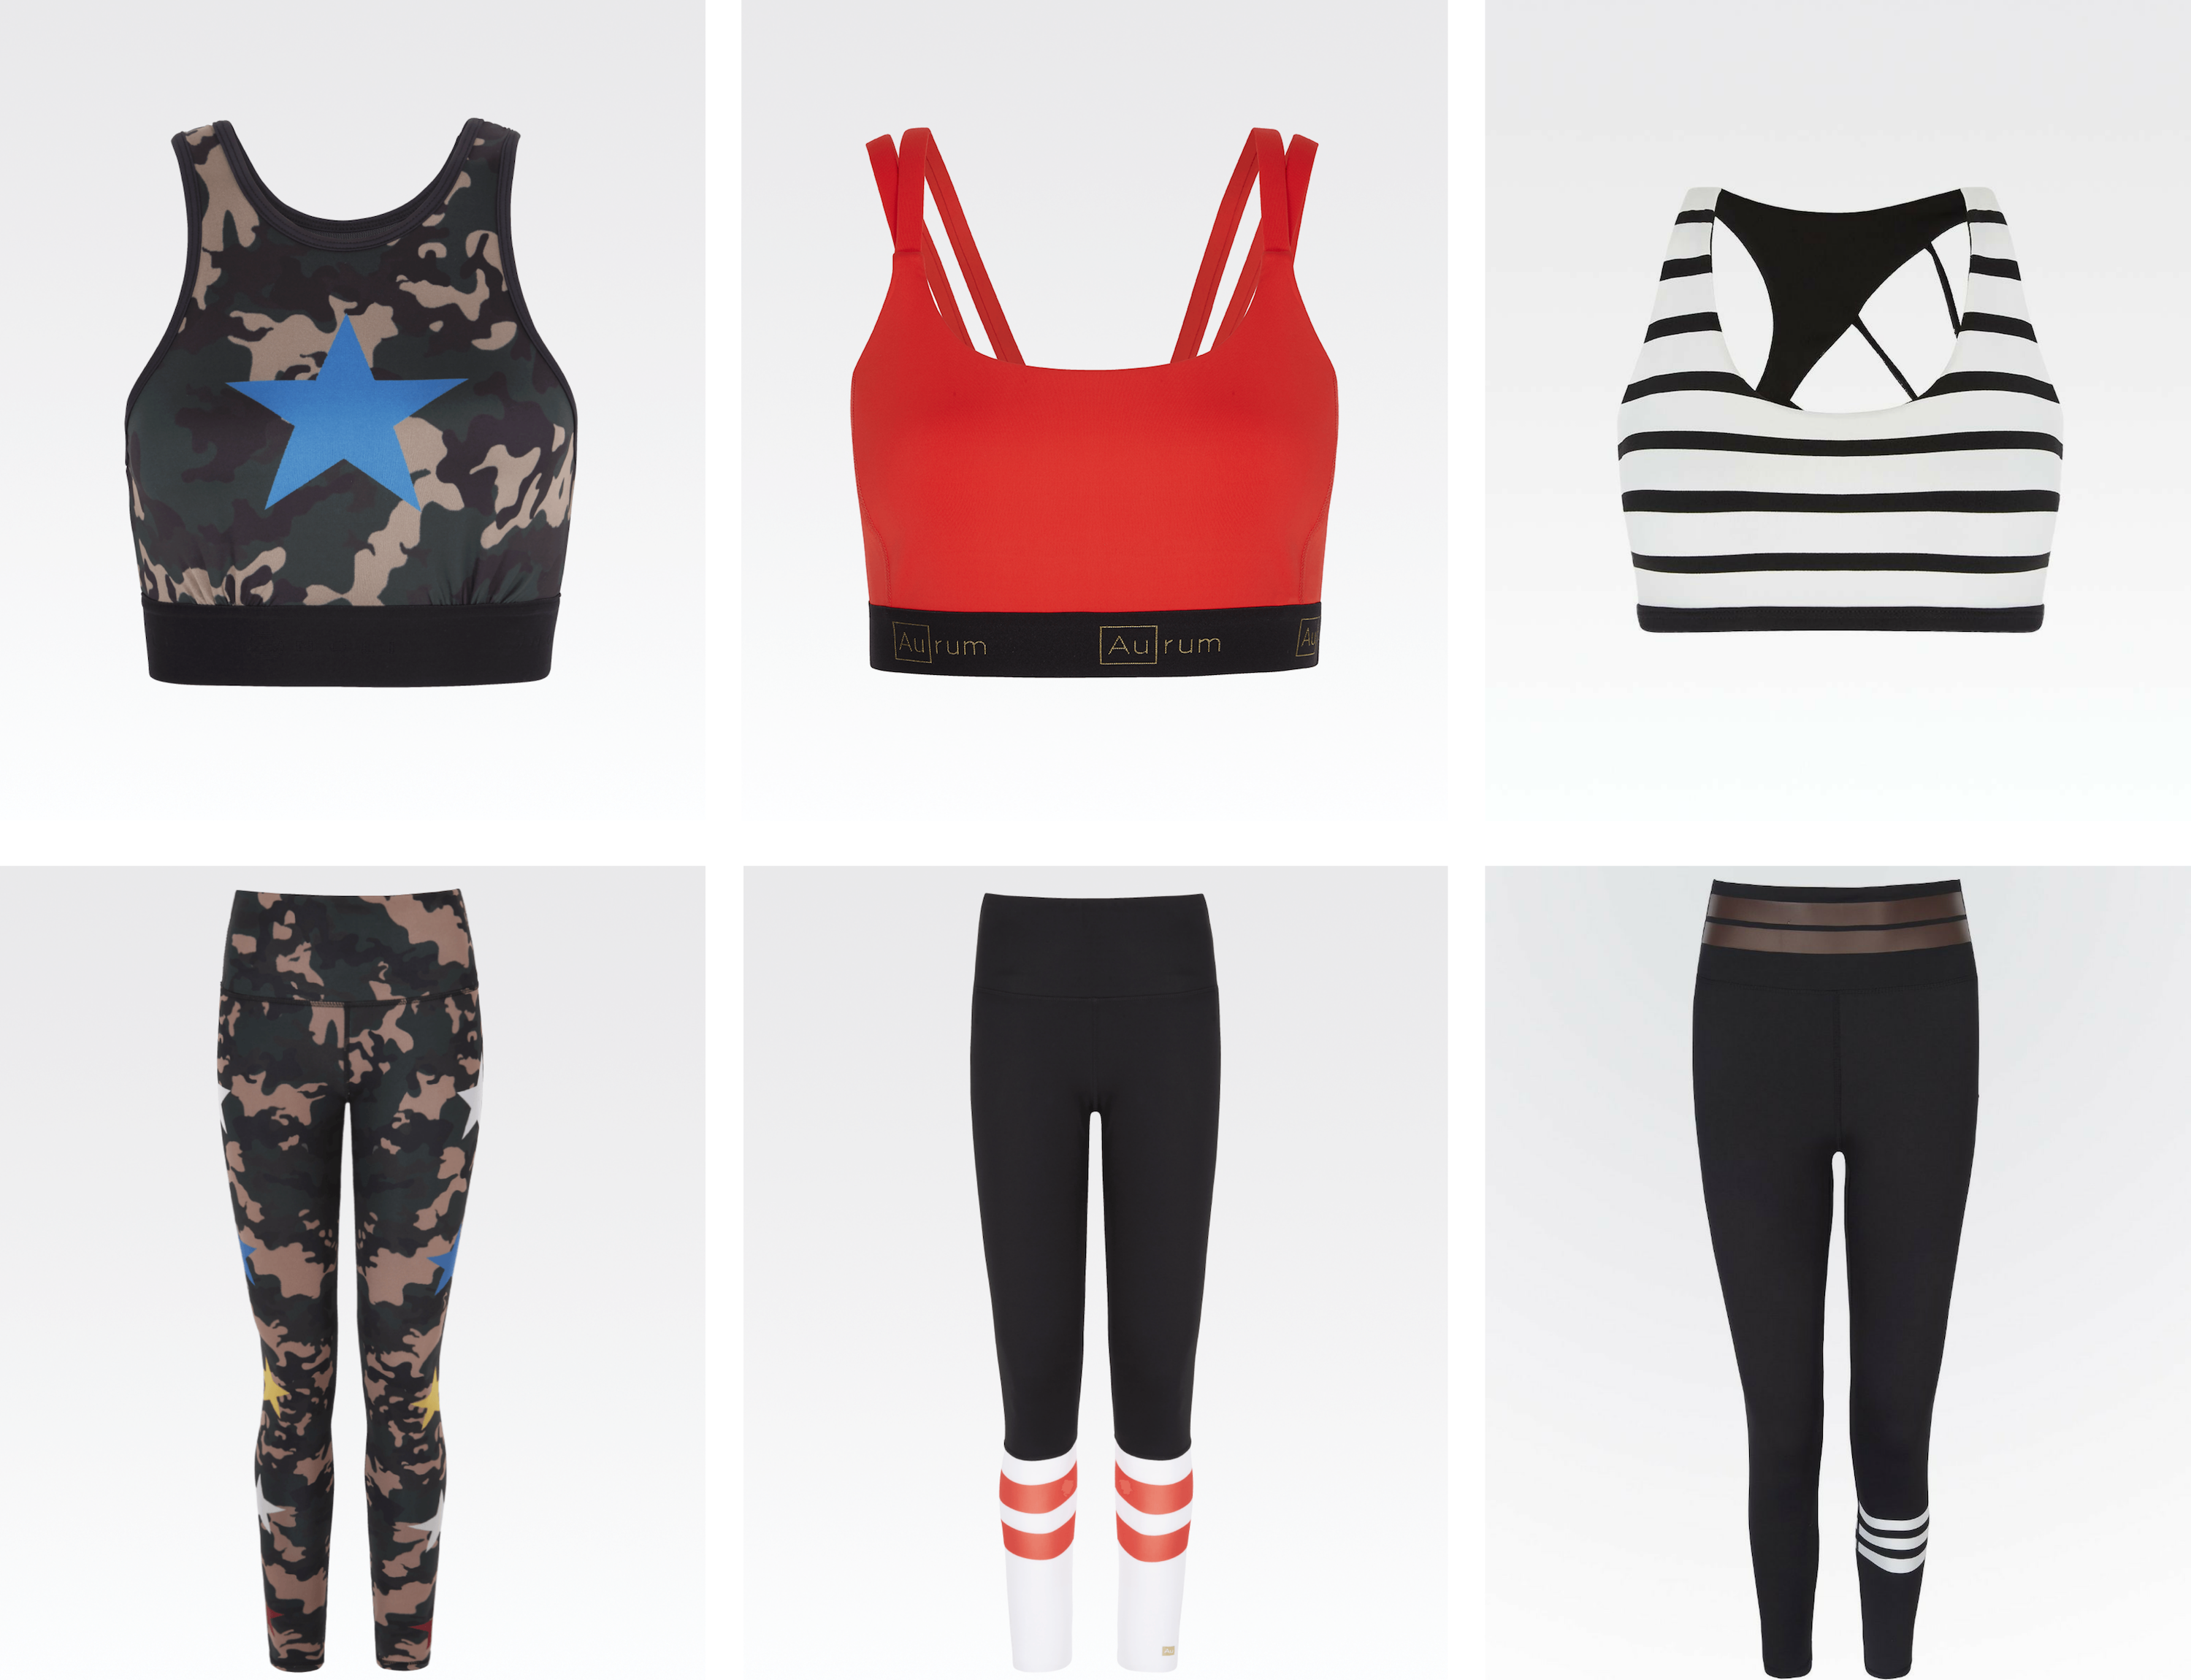 instagram star activewear athleisure Christmas gifts